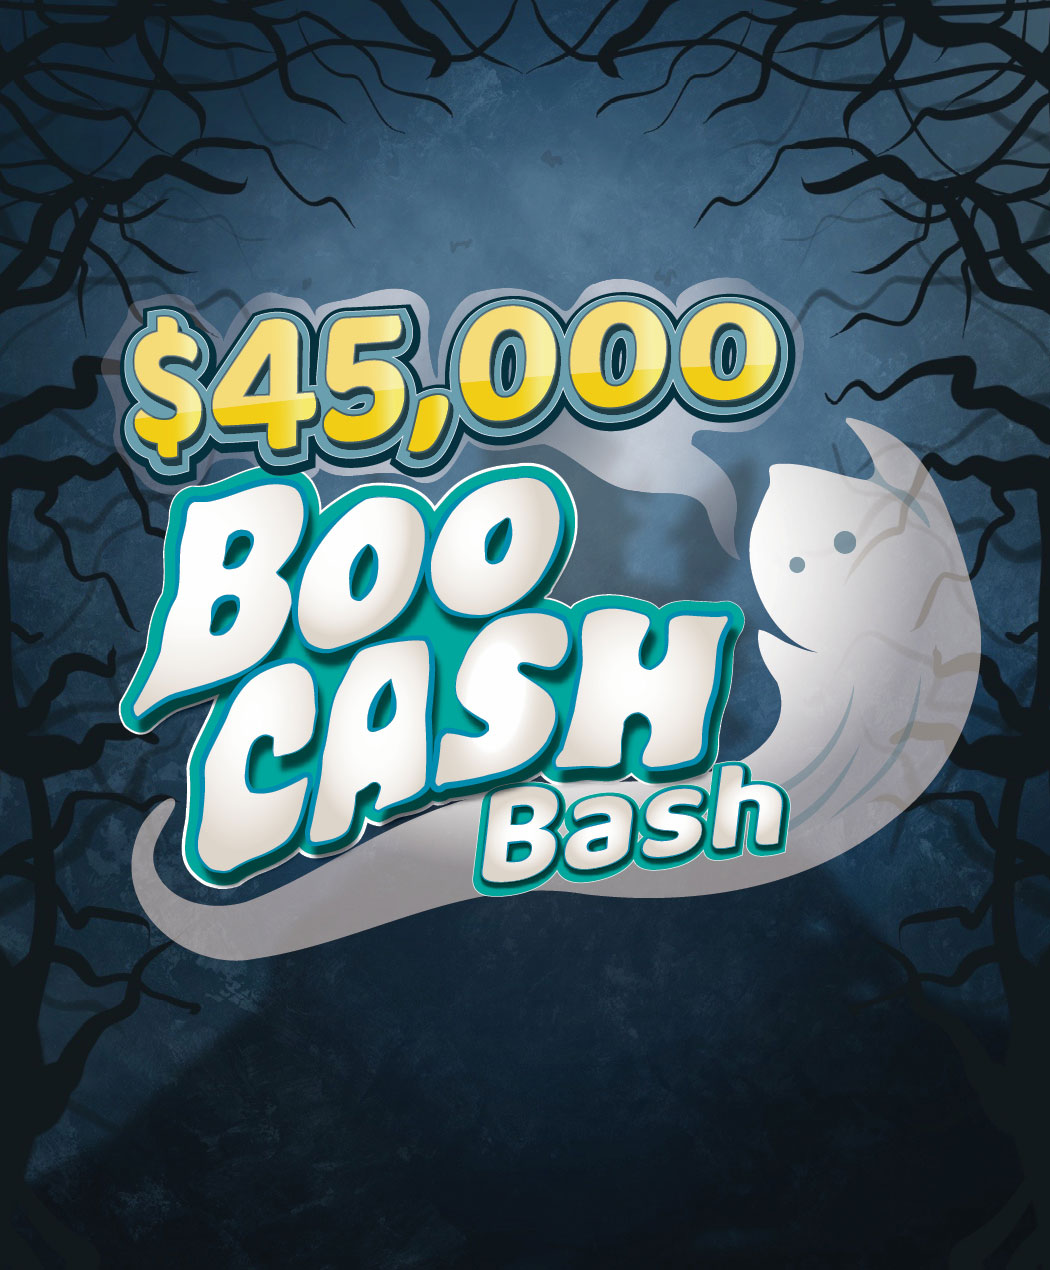 $45,000 Boo Cash Bash